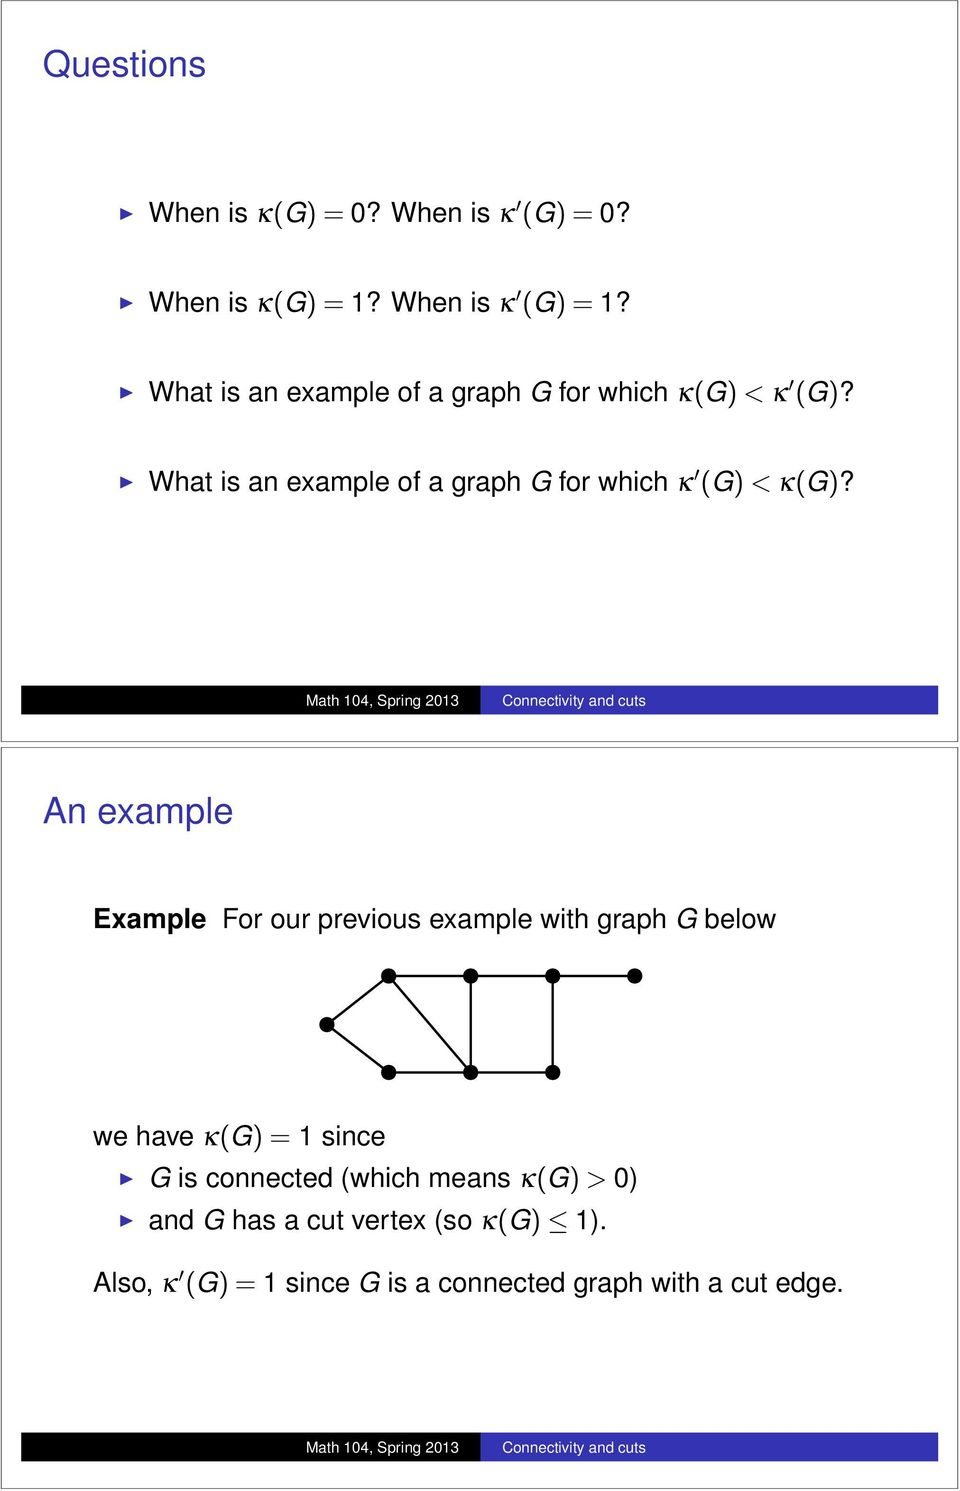 I What is an example of a graph G for which k 0 (G) < k(g)?